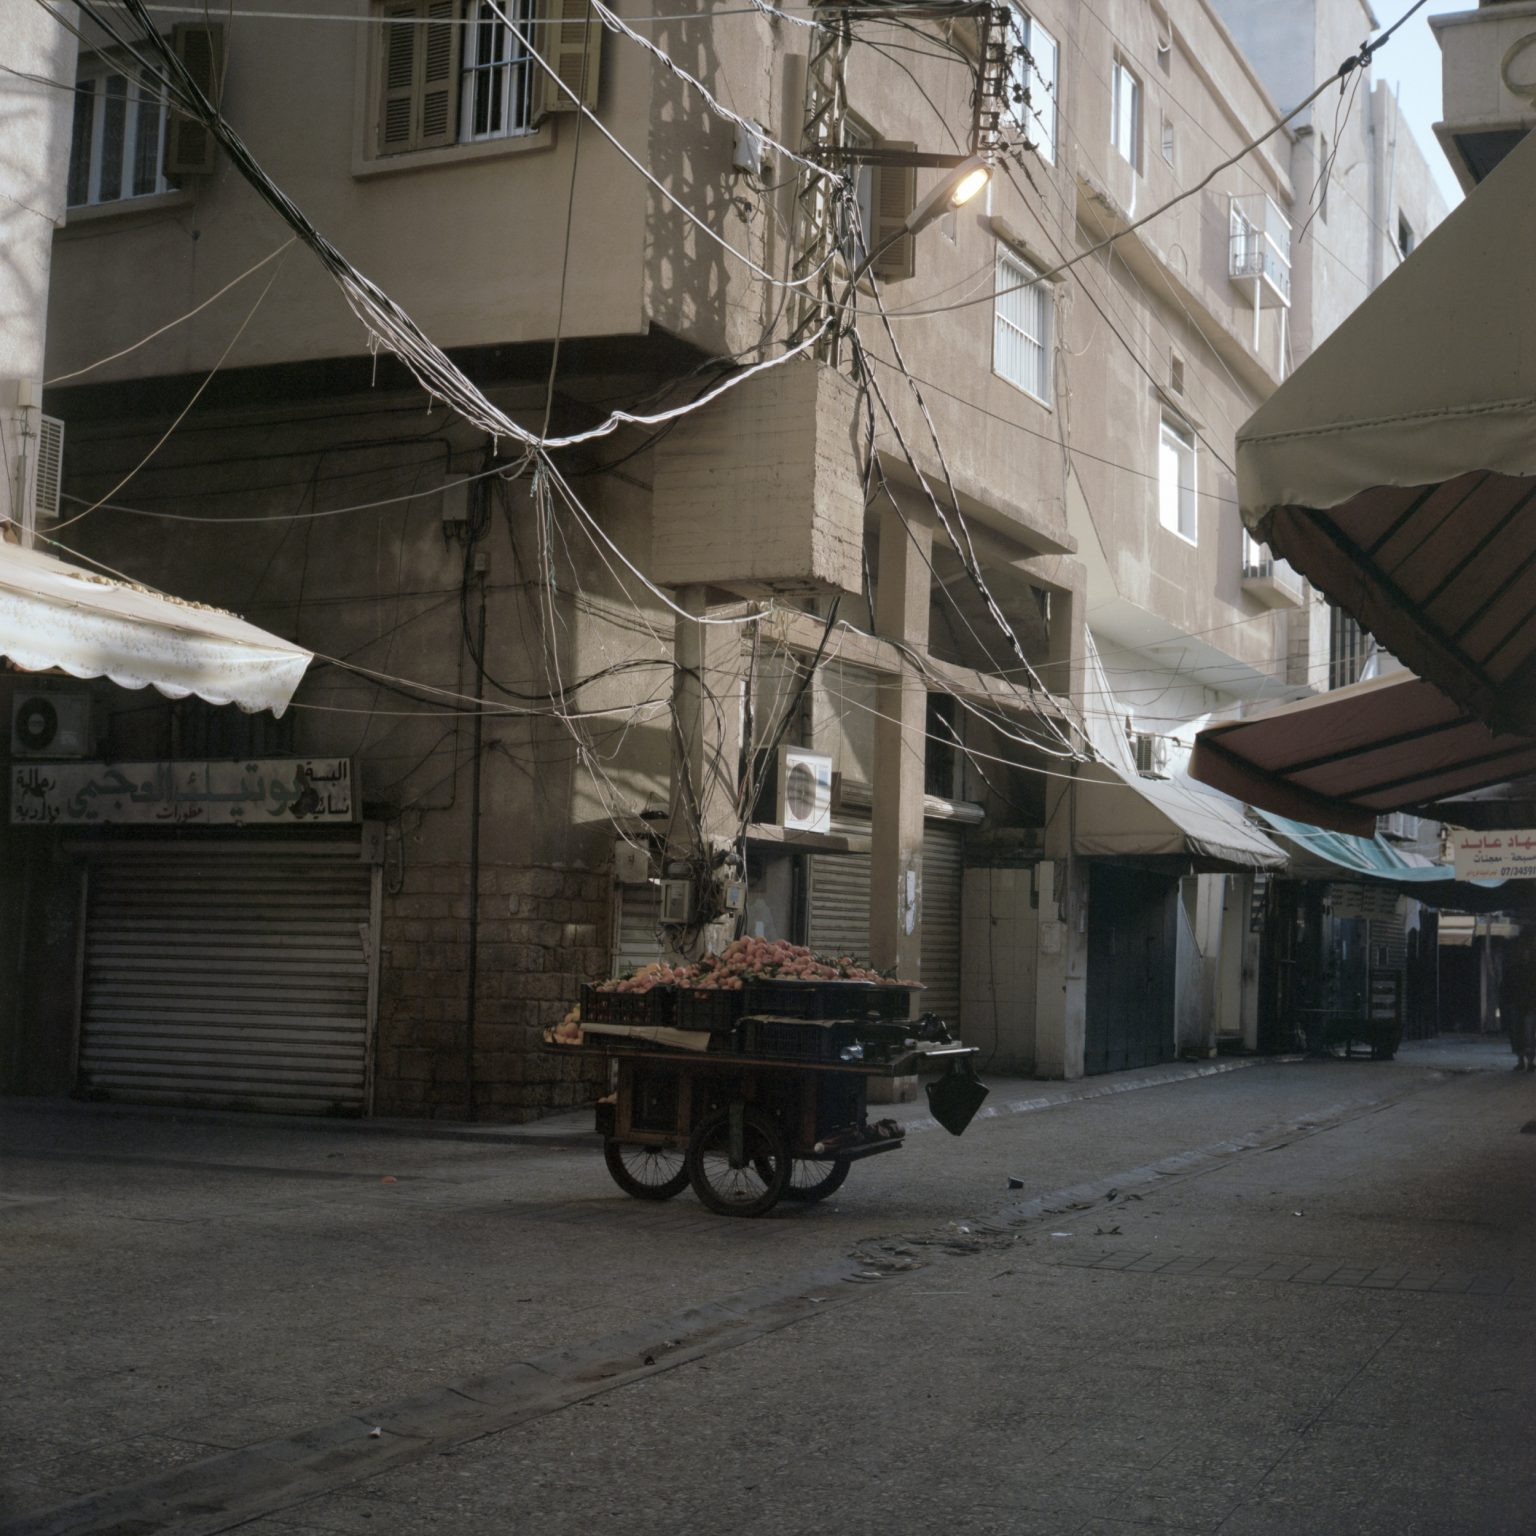 Tyre, Lebanon. A peddling cart full of oranges is left in a street of the market after closure.